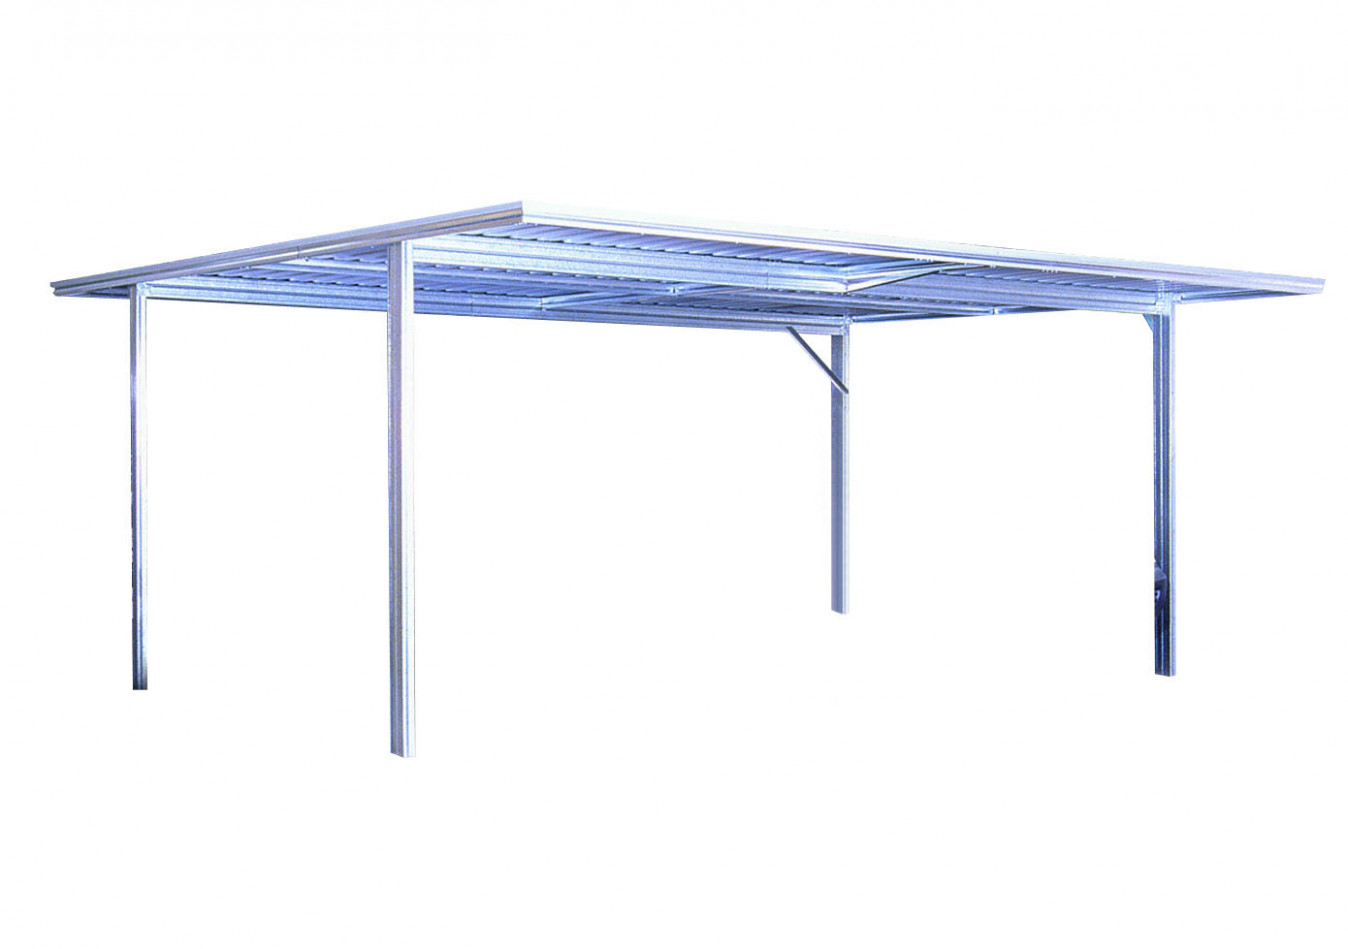 Available Roof Types For Sheds Carports With Flat Roofs